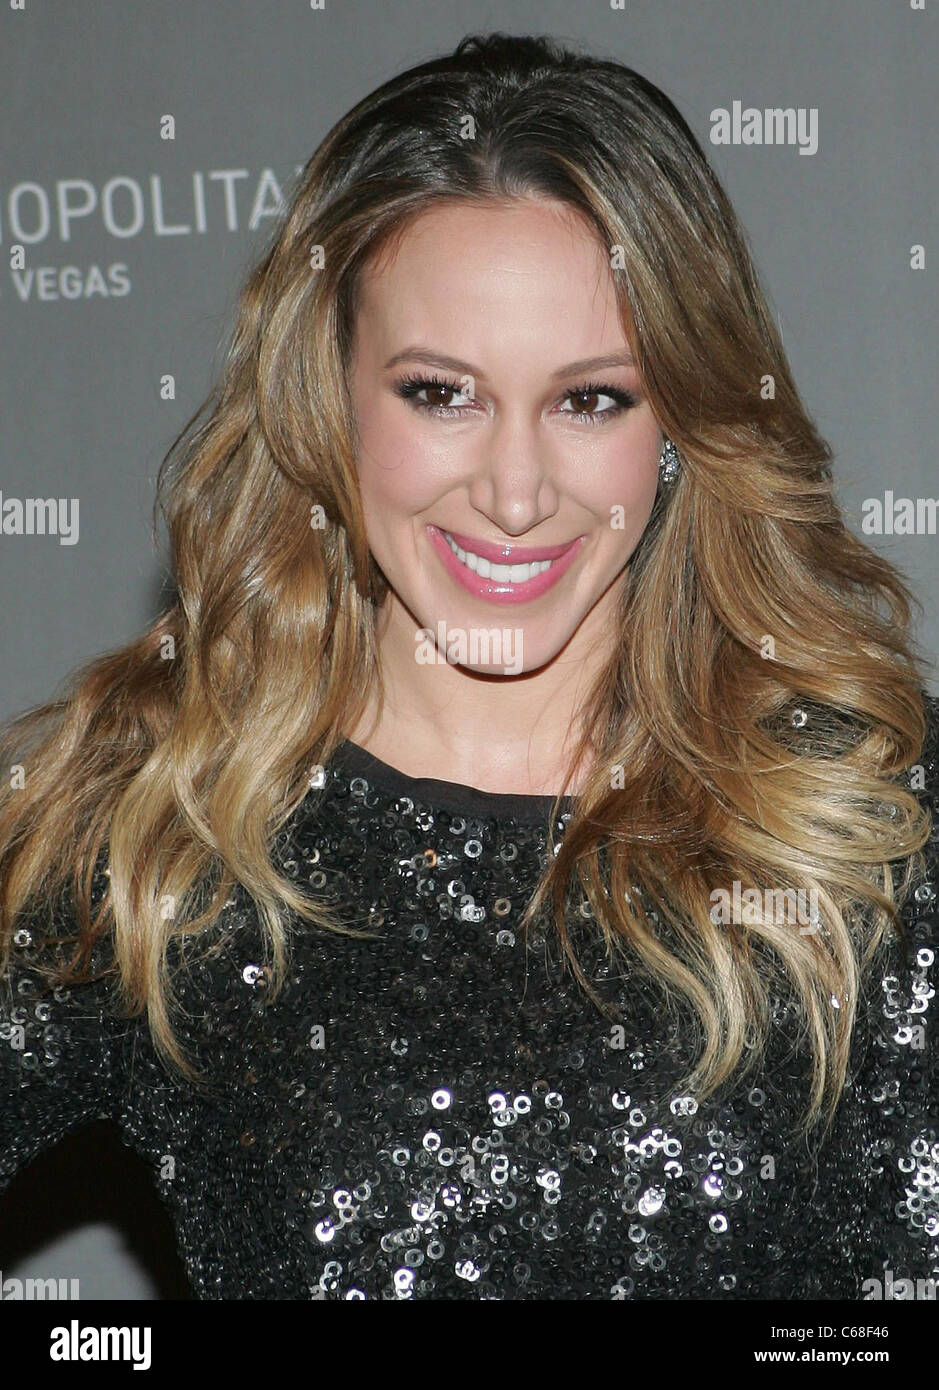 Haylie Duff Stock Photos & Haylie Duff Stock Images - Alamy